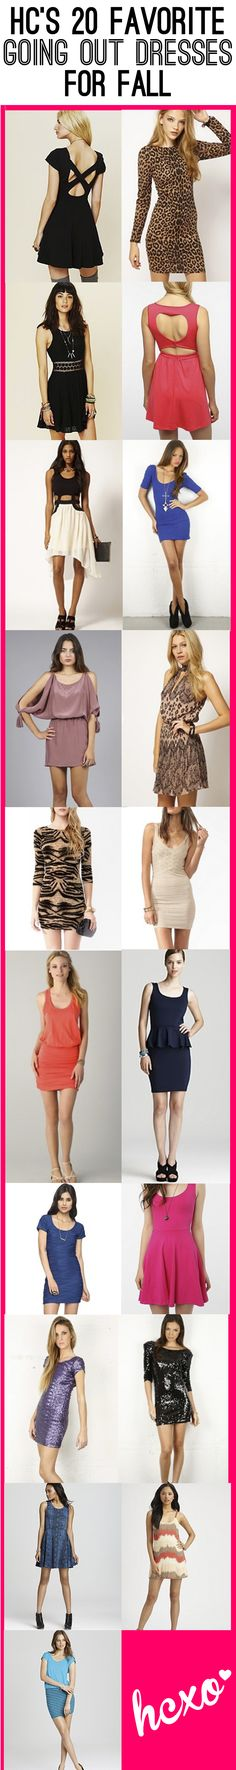 Click here to see our 20 fave fall going out dresses!